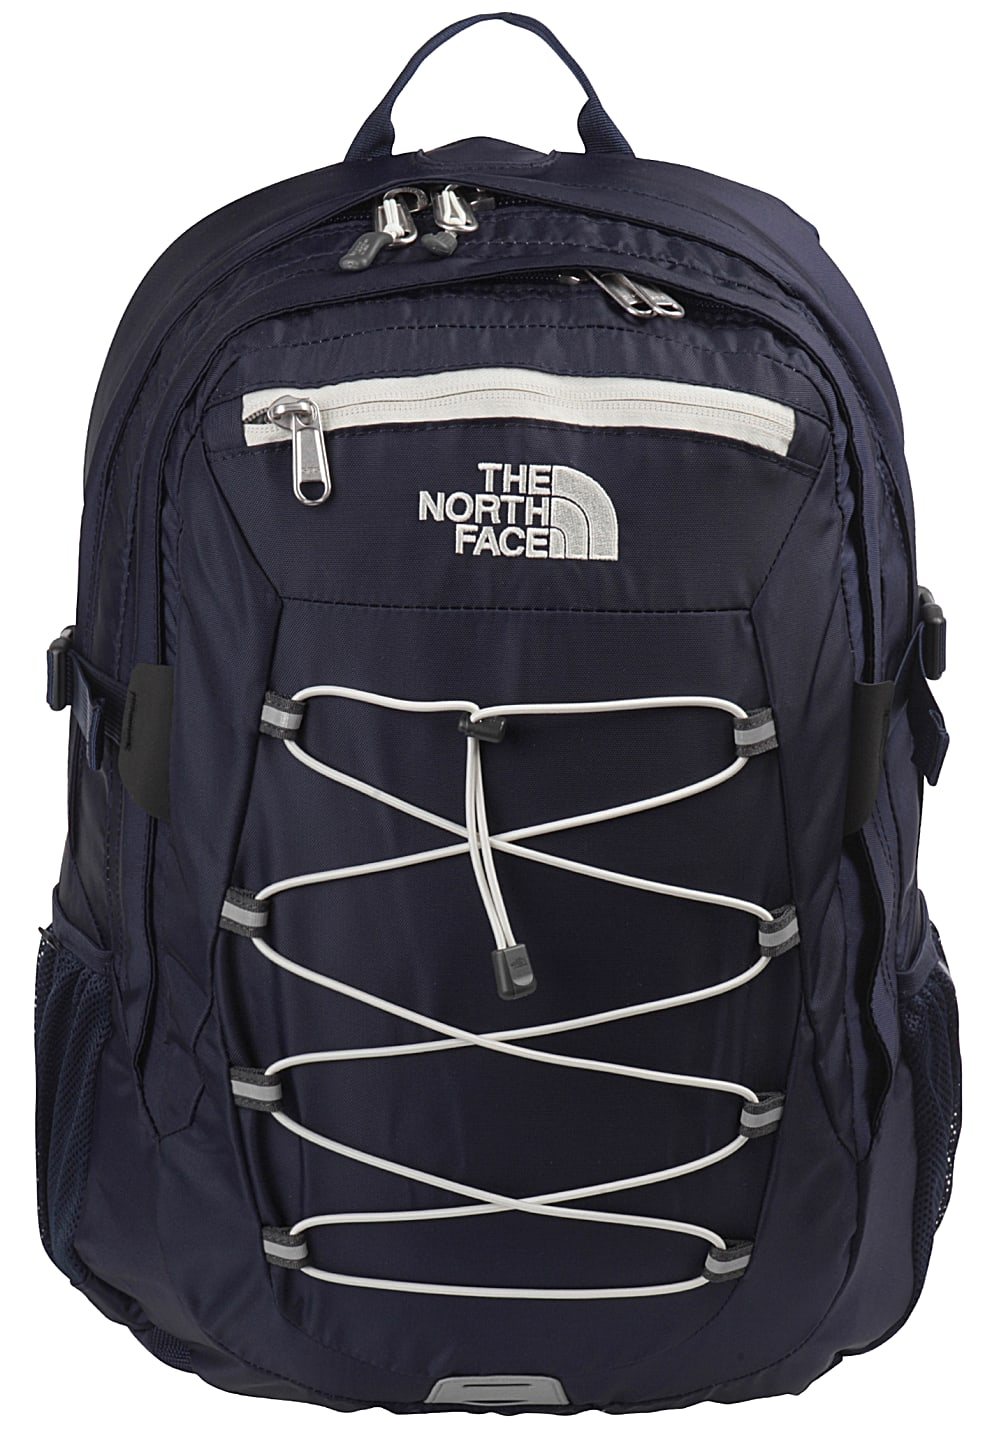 for sale best selling 2018 sneakers THE NORTH FACE Borealis Classic - Backpack - Blue